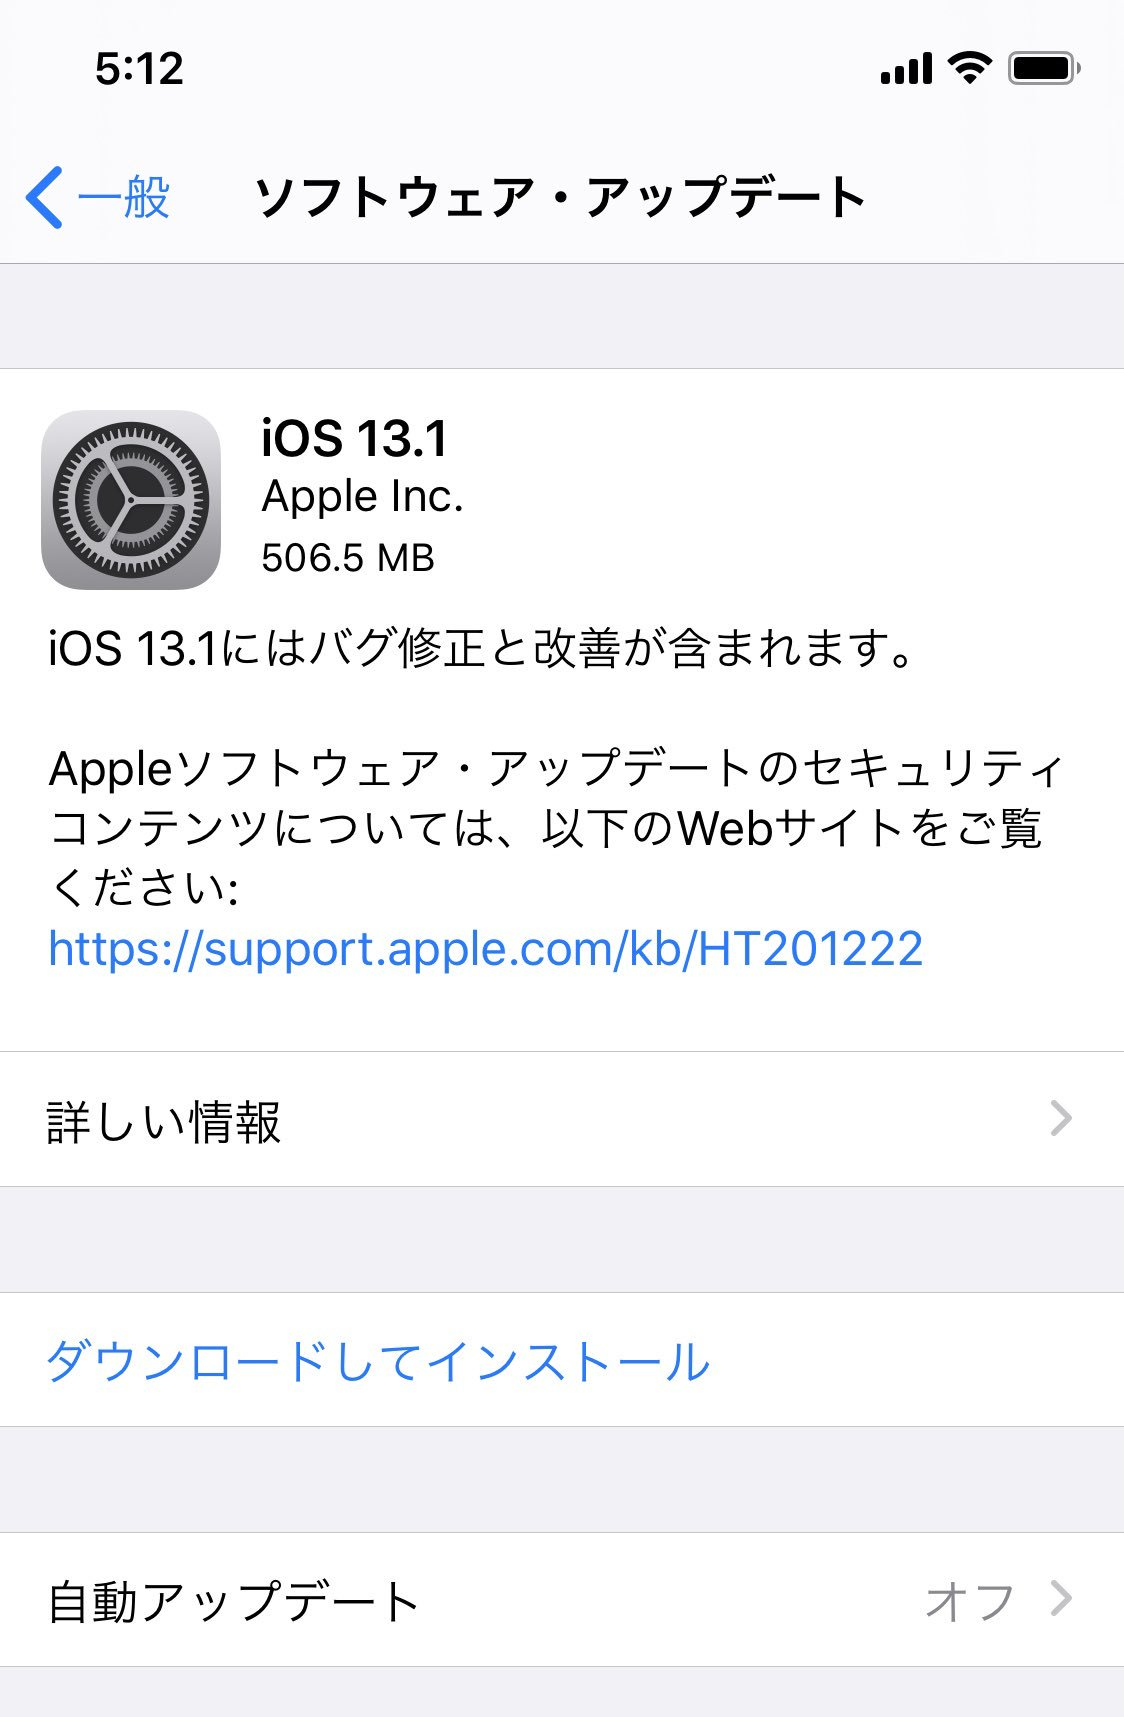 iOS 13.1 も来てた。 https://t.co/Jnnl9A0Efr